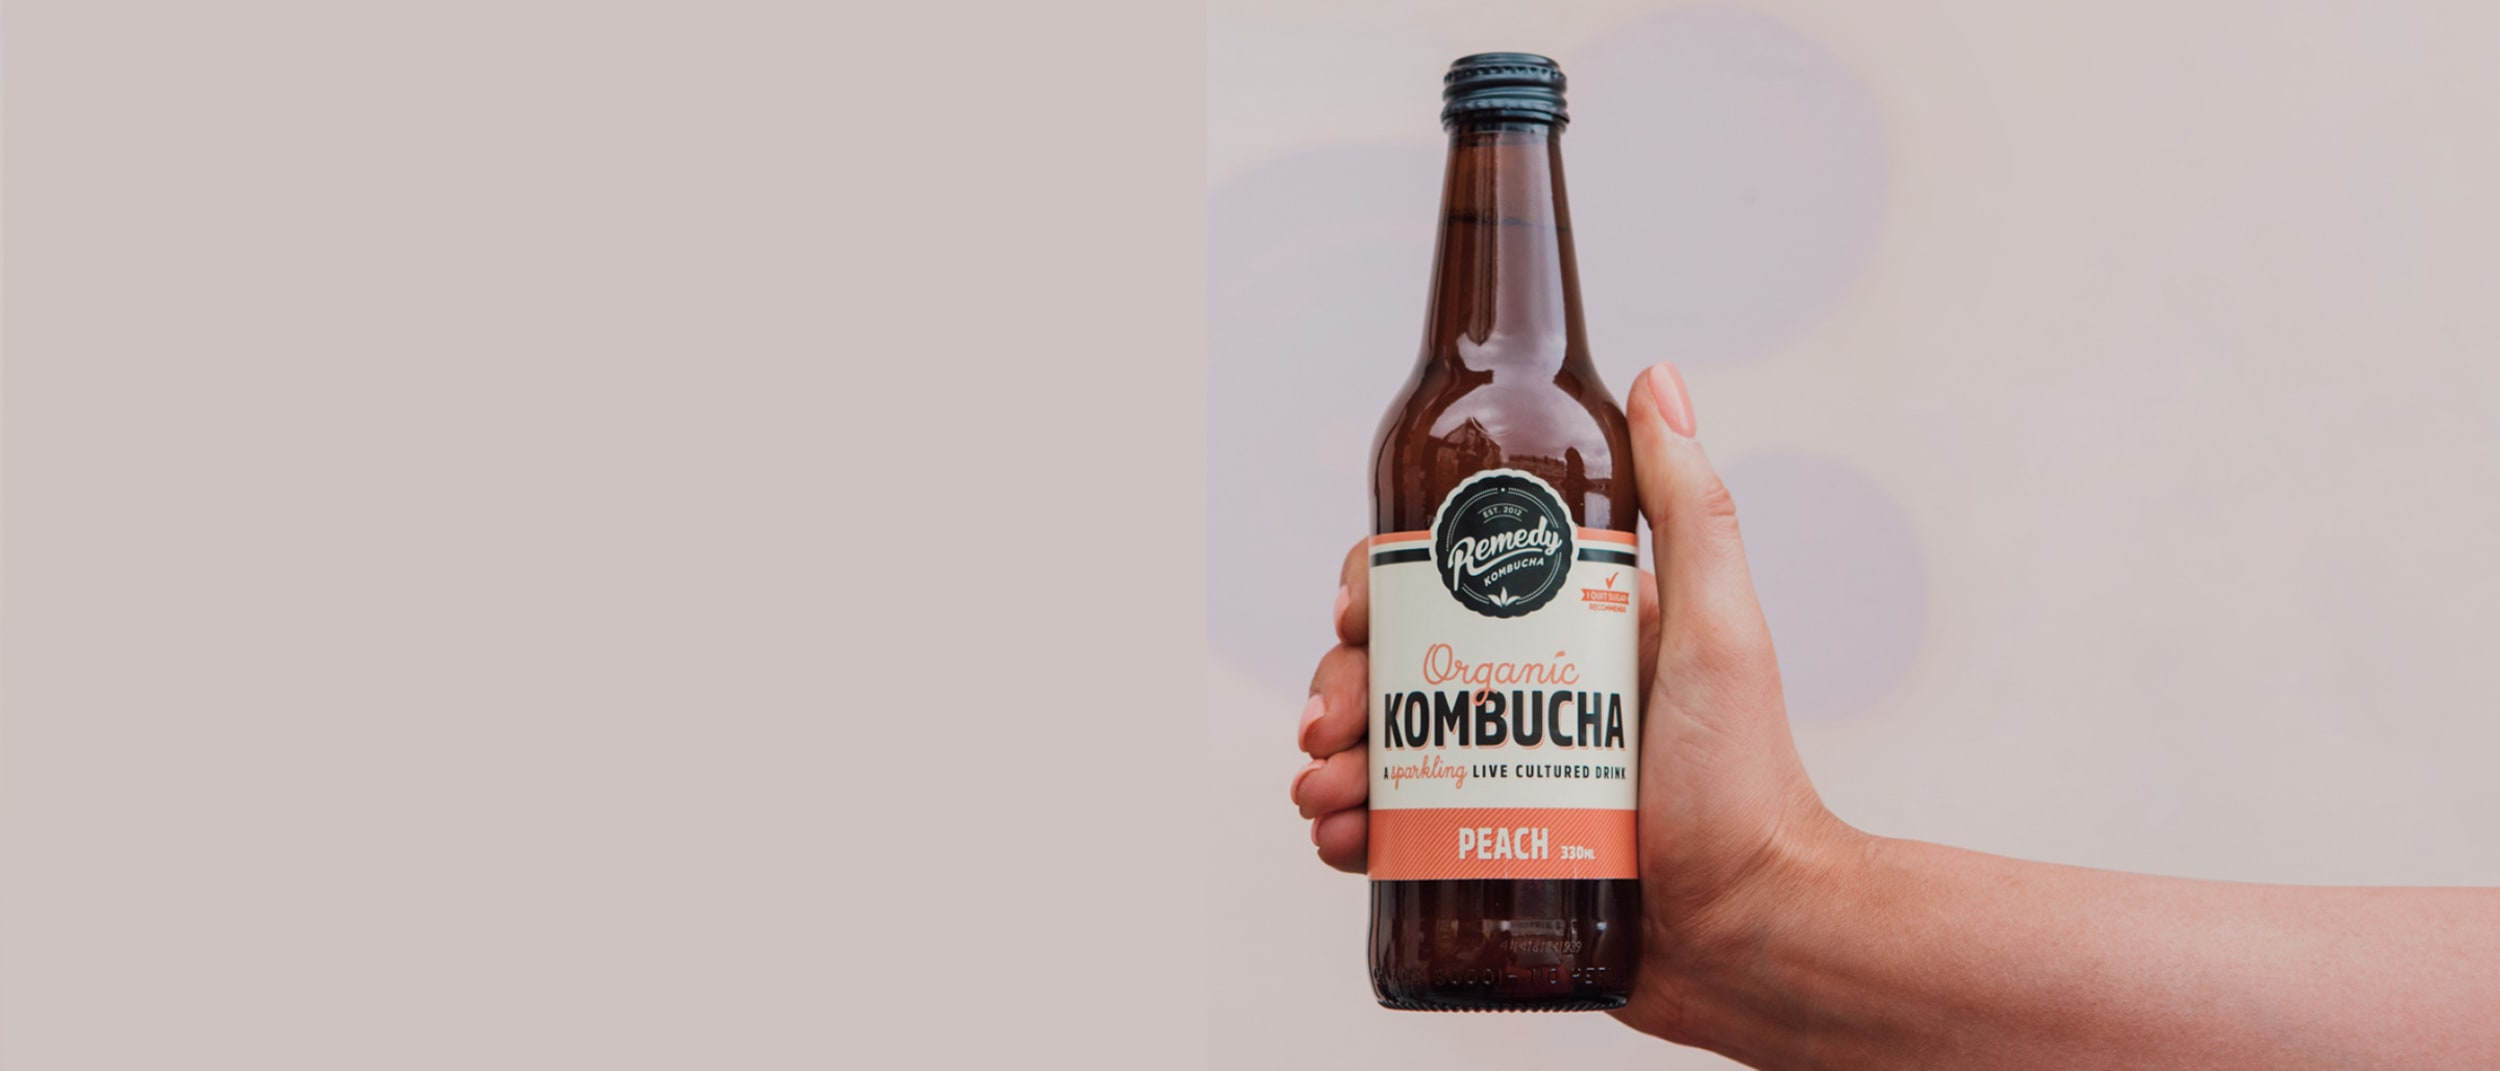 Mad Mex Fresh Mexican Grill: Remedy Kombucha for just $3.50